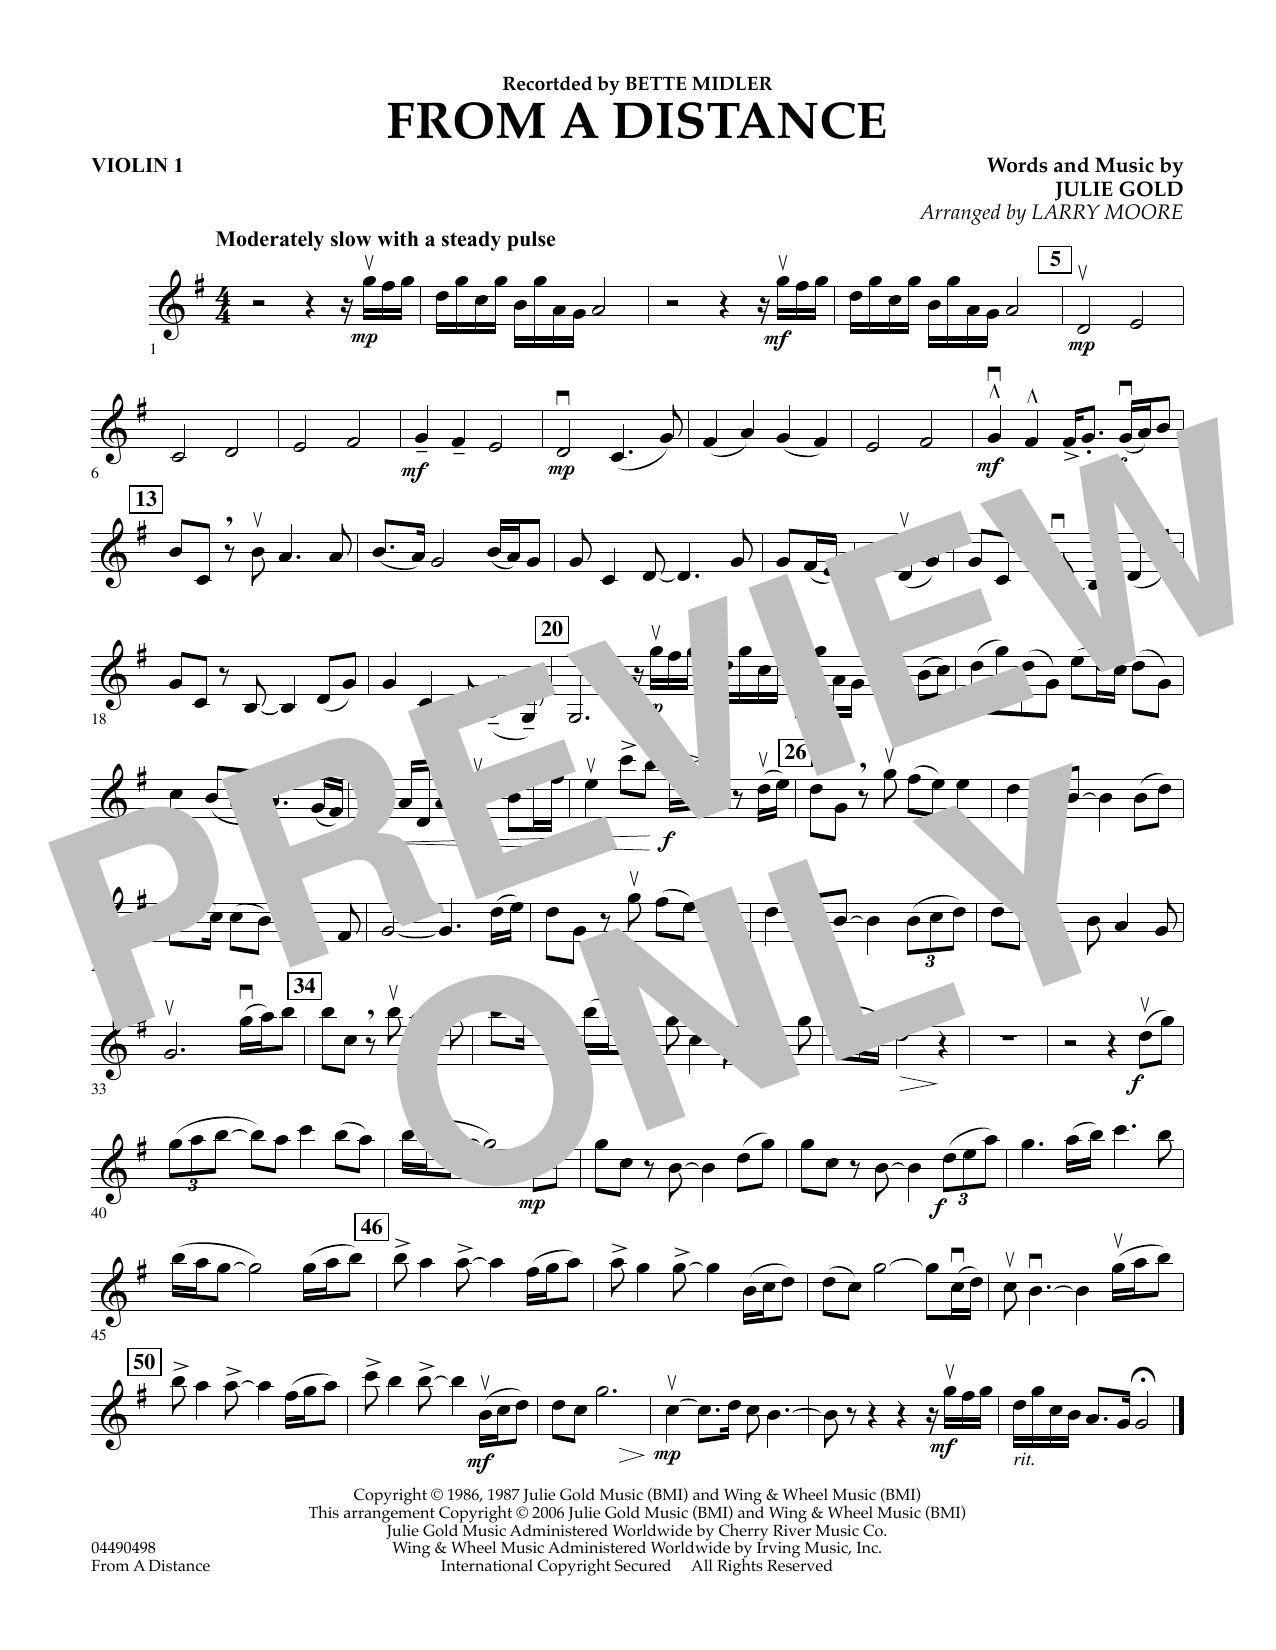 Download Julie Gold 'From a Distance (arr. Larry Moore) - Violin 1' Digital Sheet Music Notes & Chords and start playing in minutes